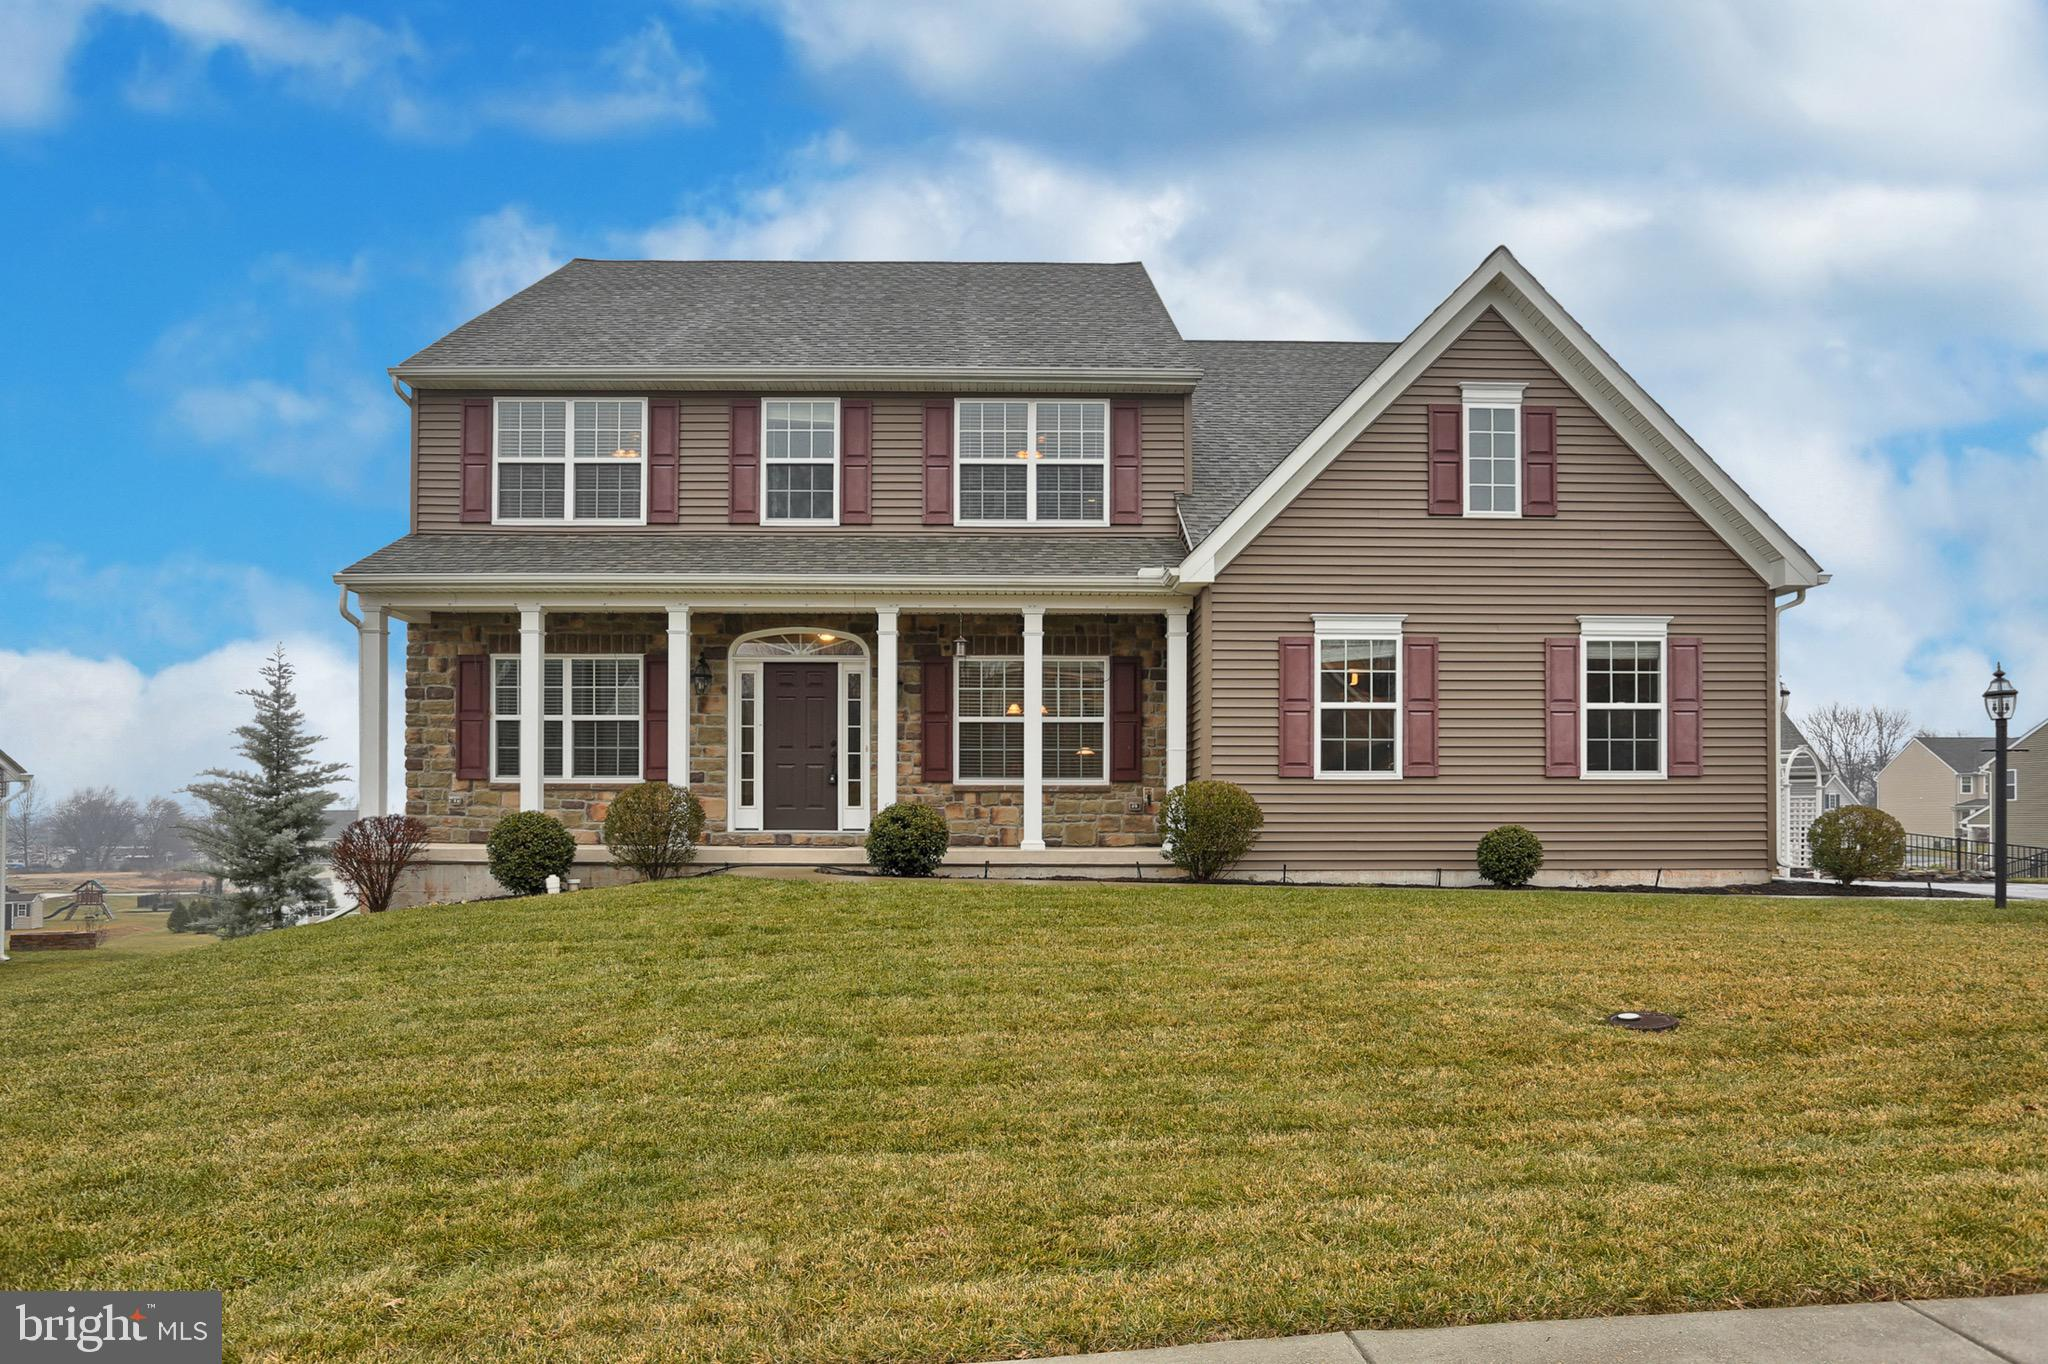 672 SADDLE ROAD, PALMYRA, PA 17078